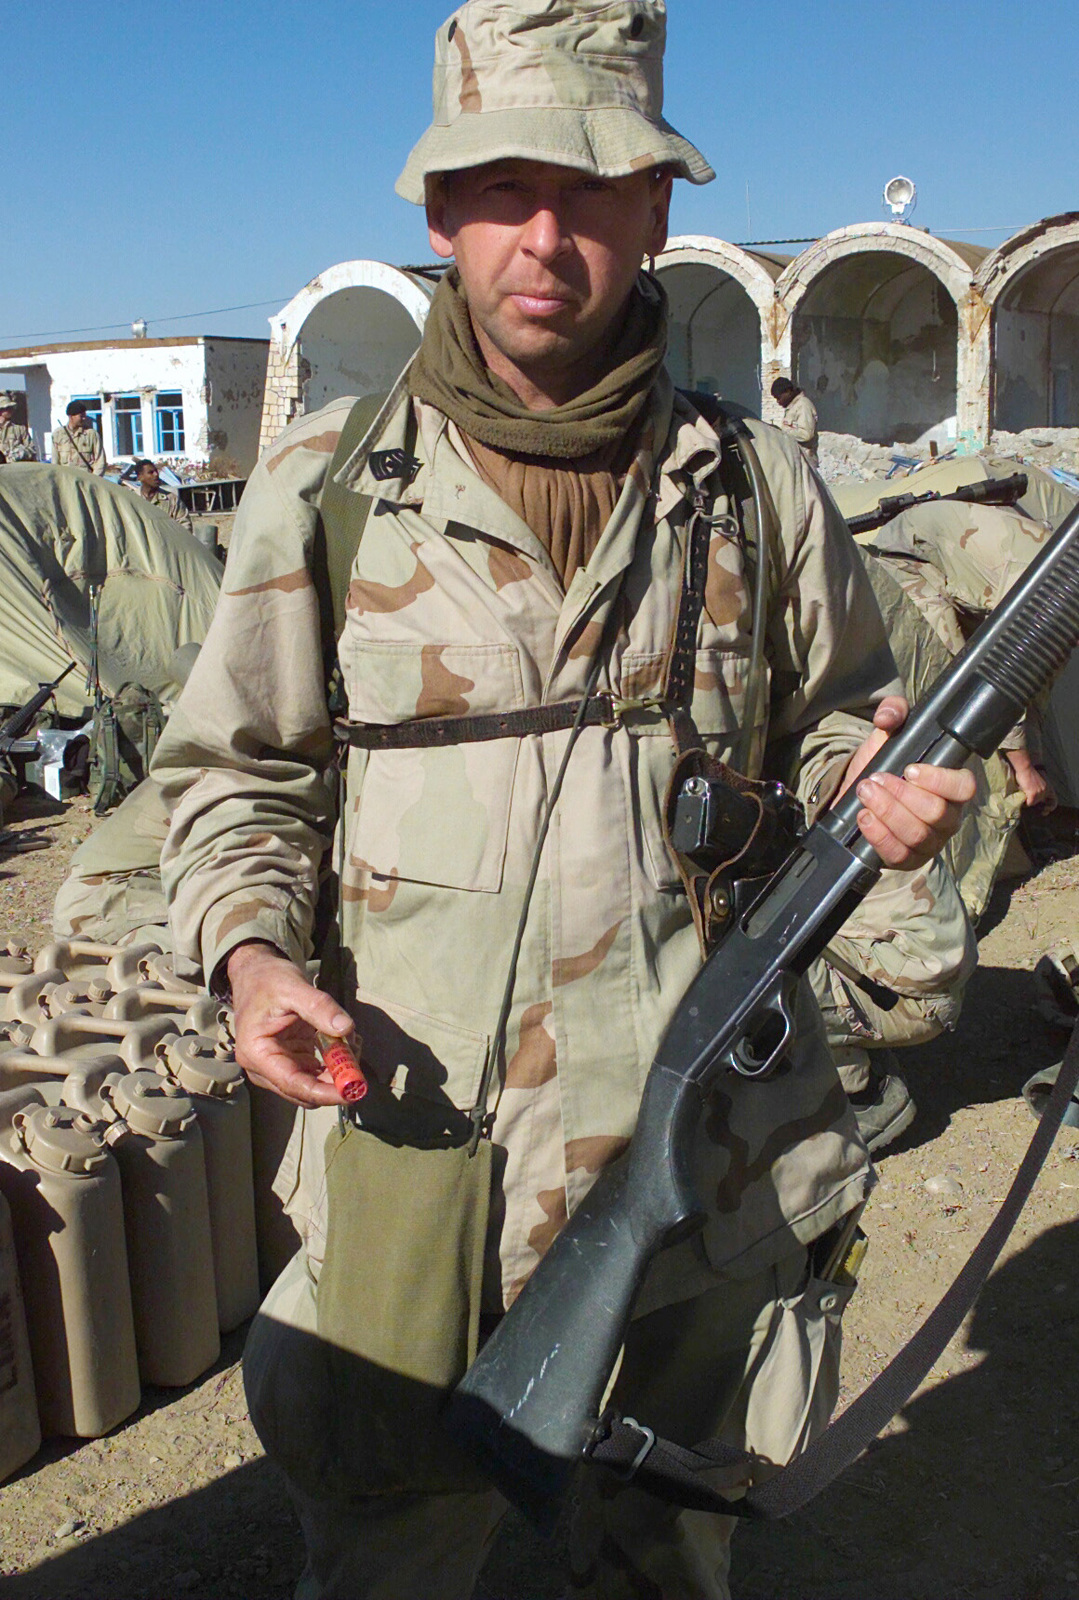 First Sergeant Rickie McCall, USMC, First Sergeant of Kilo Company, Battalion Landing Team 3/6, 26th Marine Expeditionary Unit (Special Operations Capable) (MEU(SOC)) poses with his Remington 879 shotgun and a holdstered M-9 pistol at Kandahar International Airport, Kandahar, Afghanistan, during OPERATION ENDURING FREEDOM